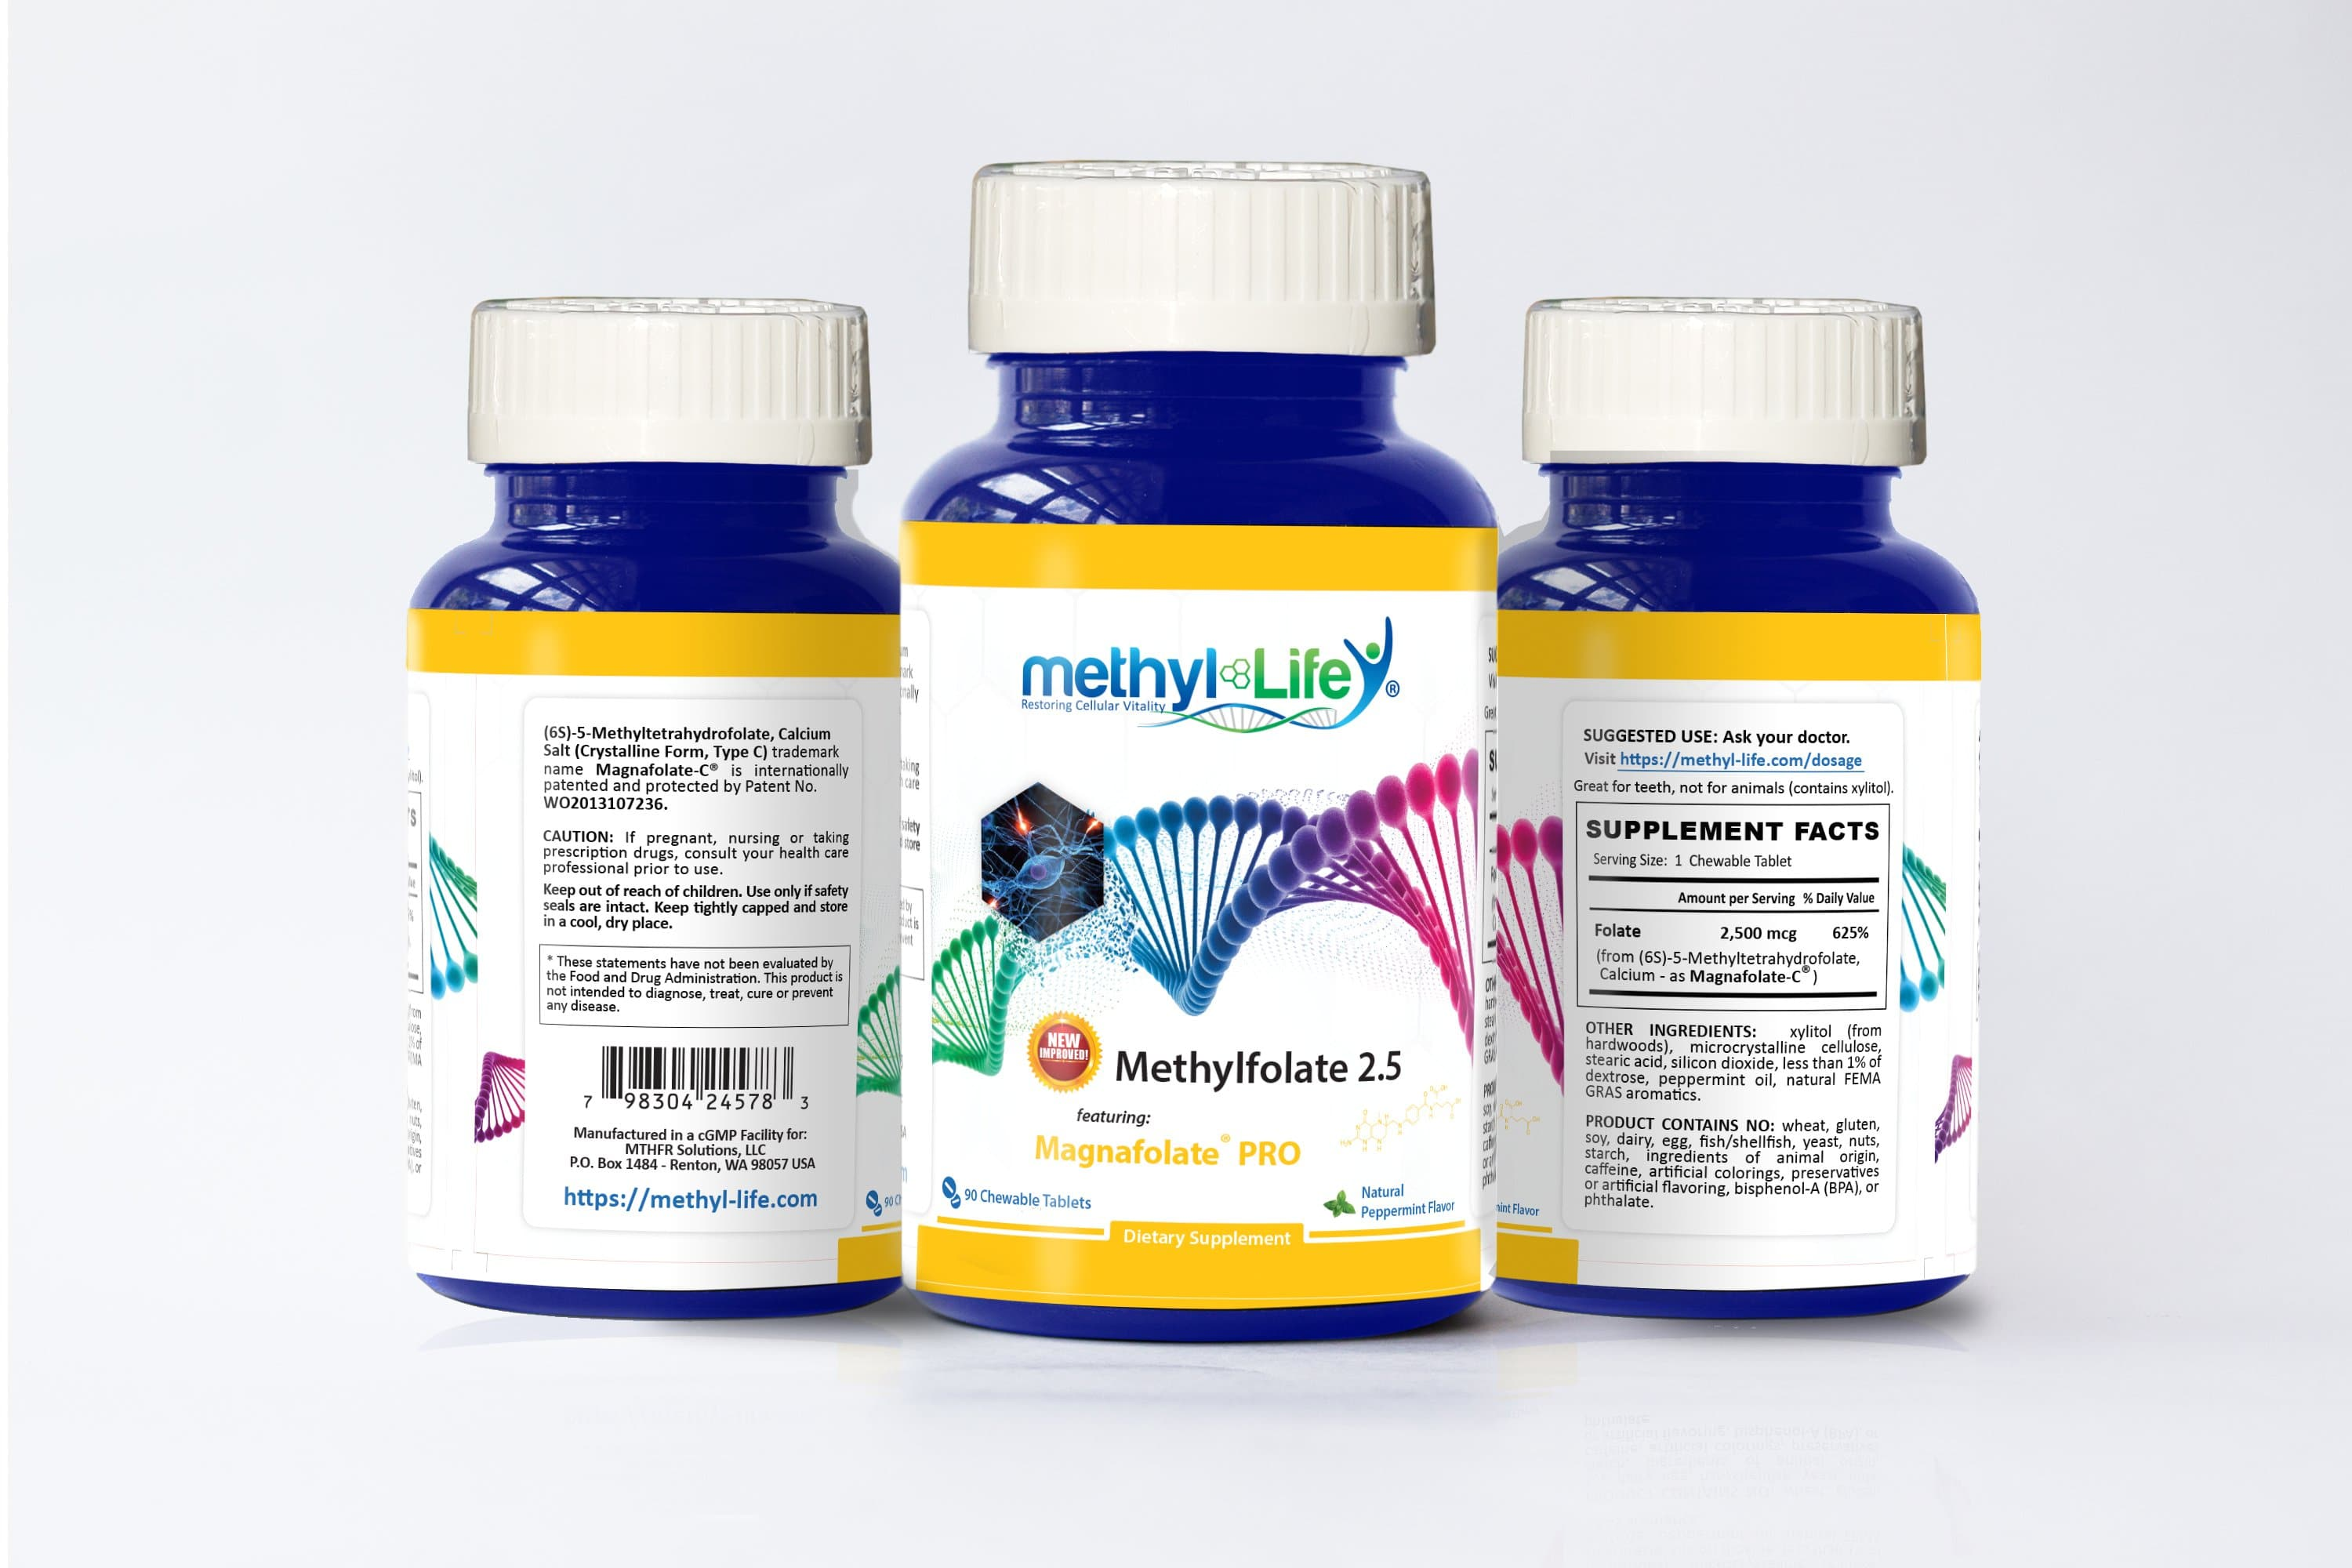 l-methylfolate 2.5 mg packaging